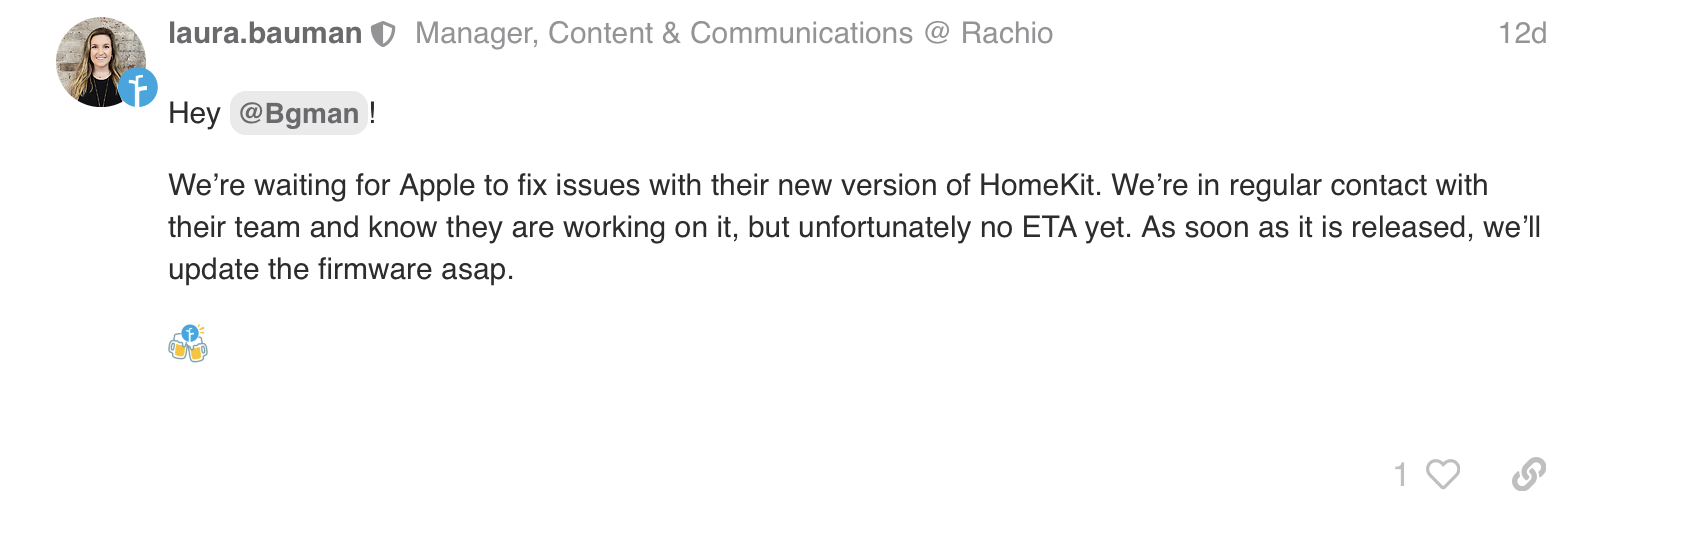 Rachio Support Update post